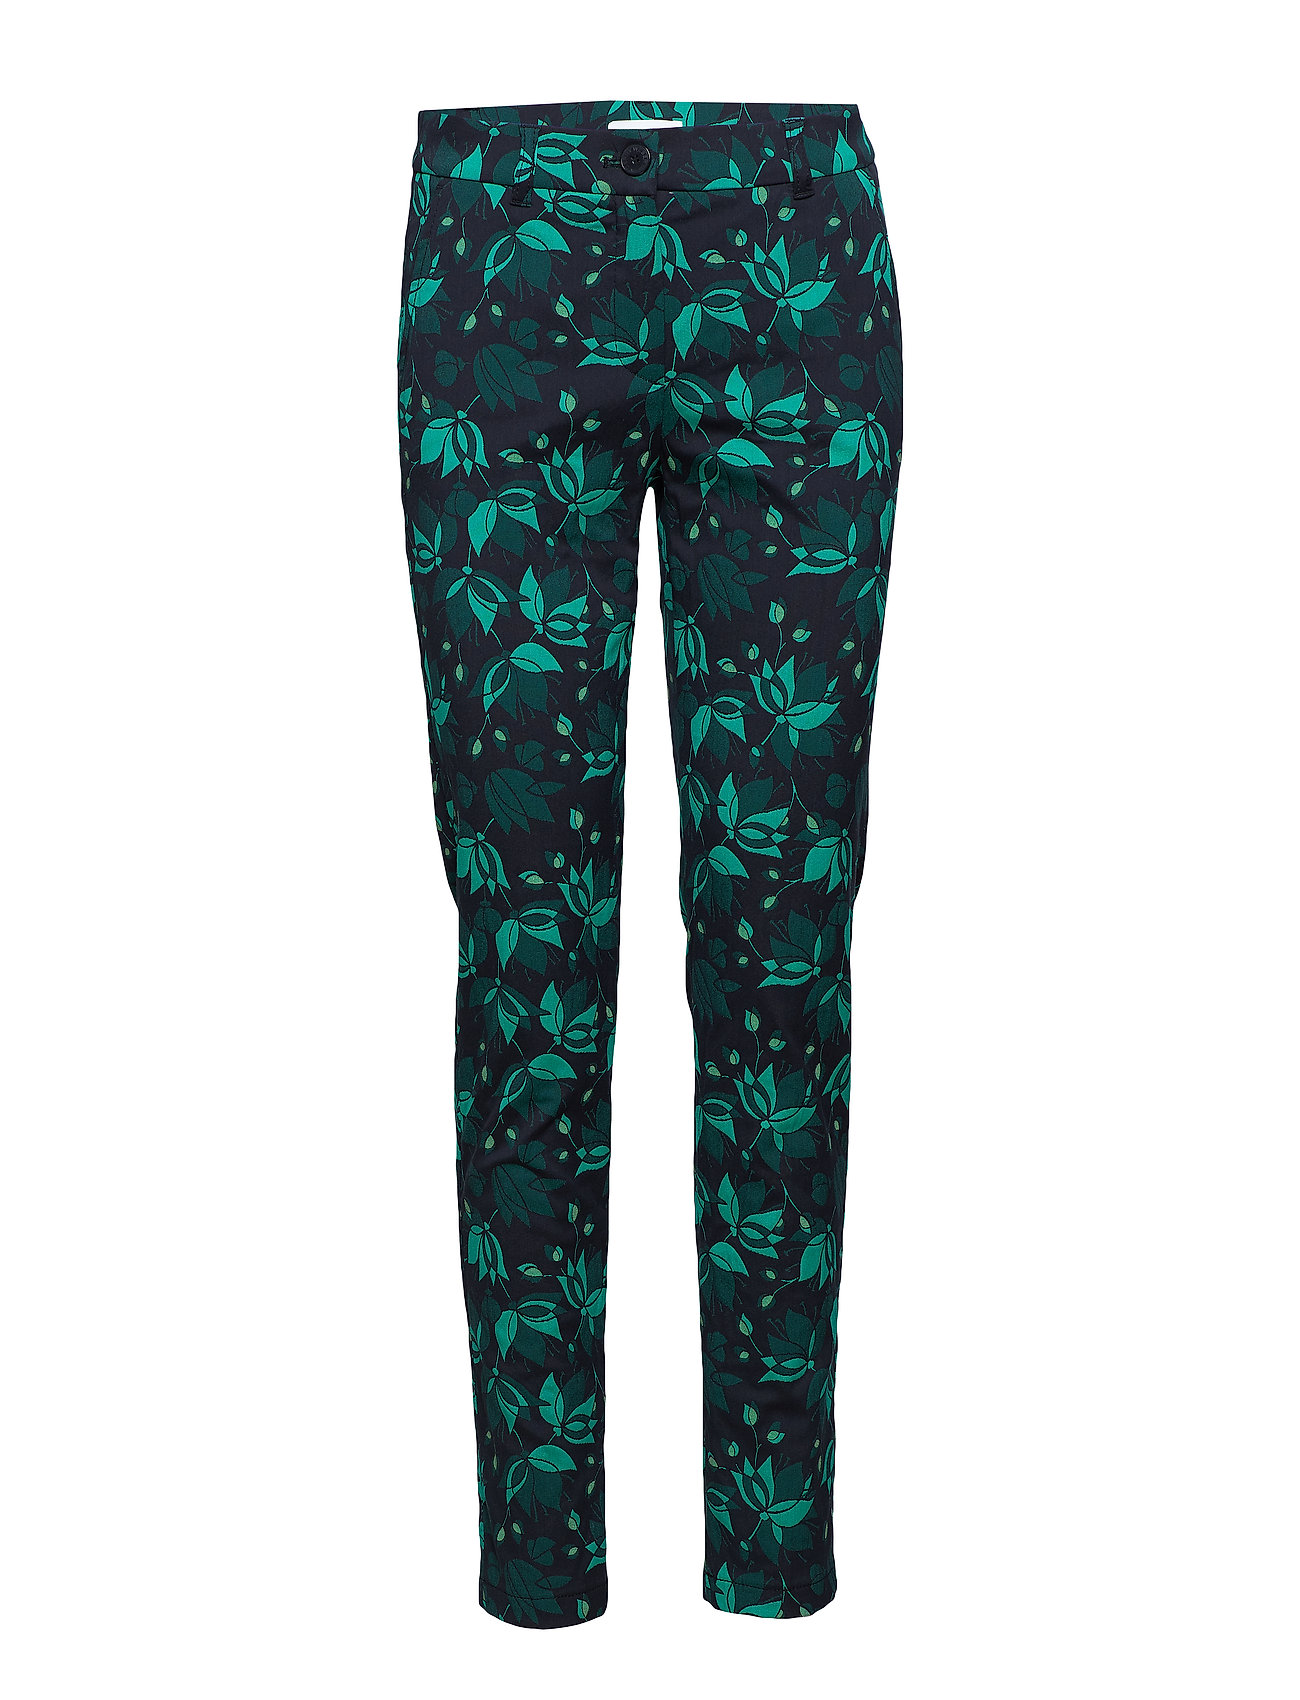 Leisure Trousers Lon - Gerry Weber Edition